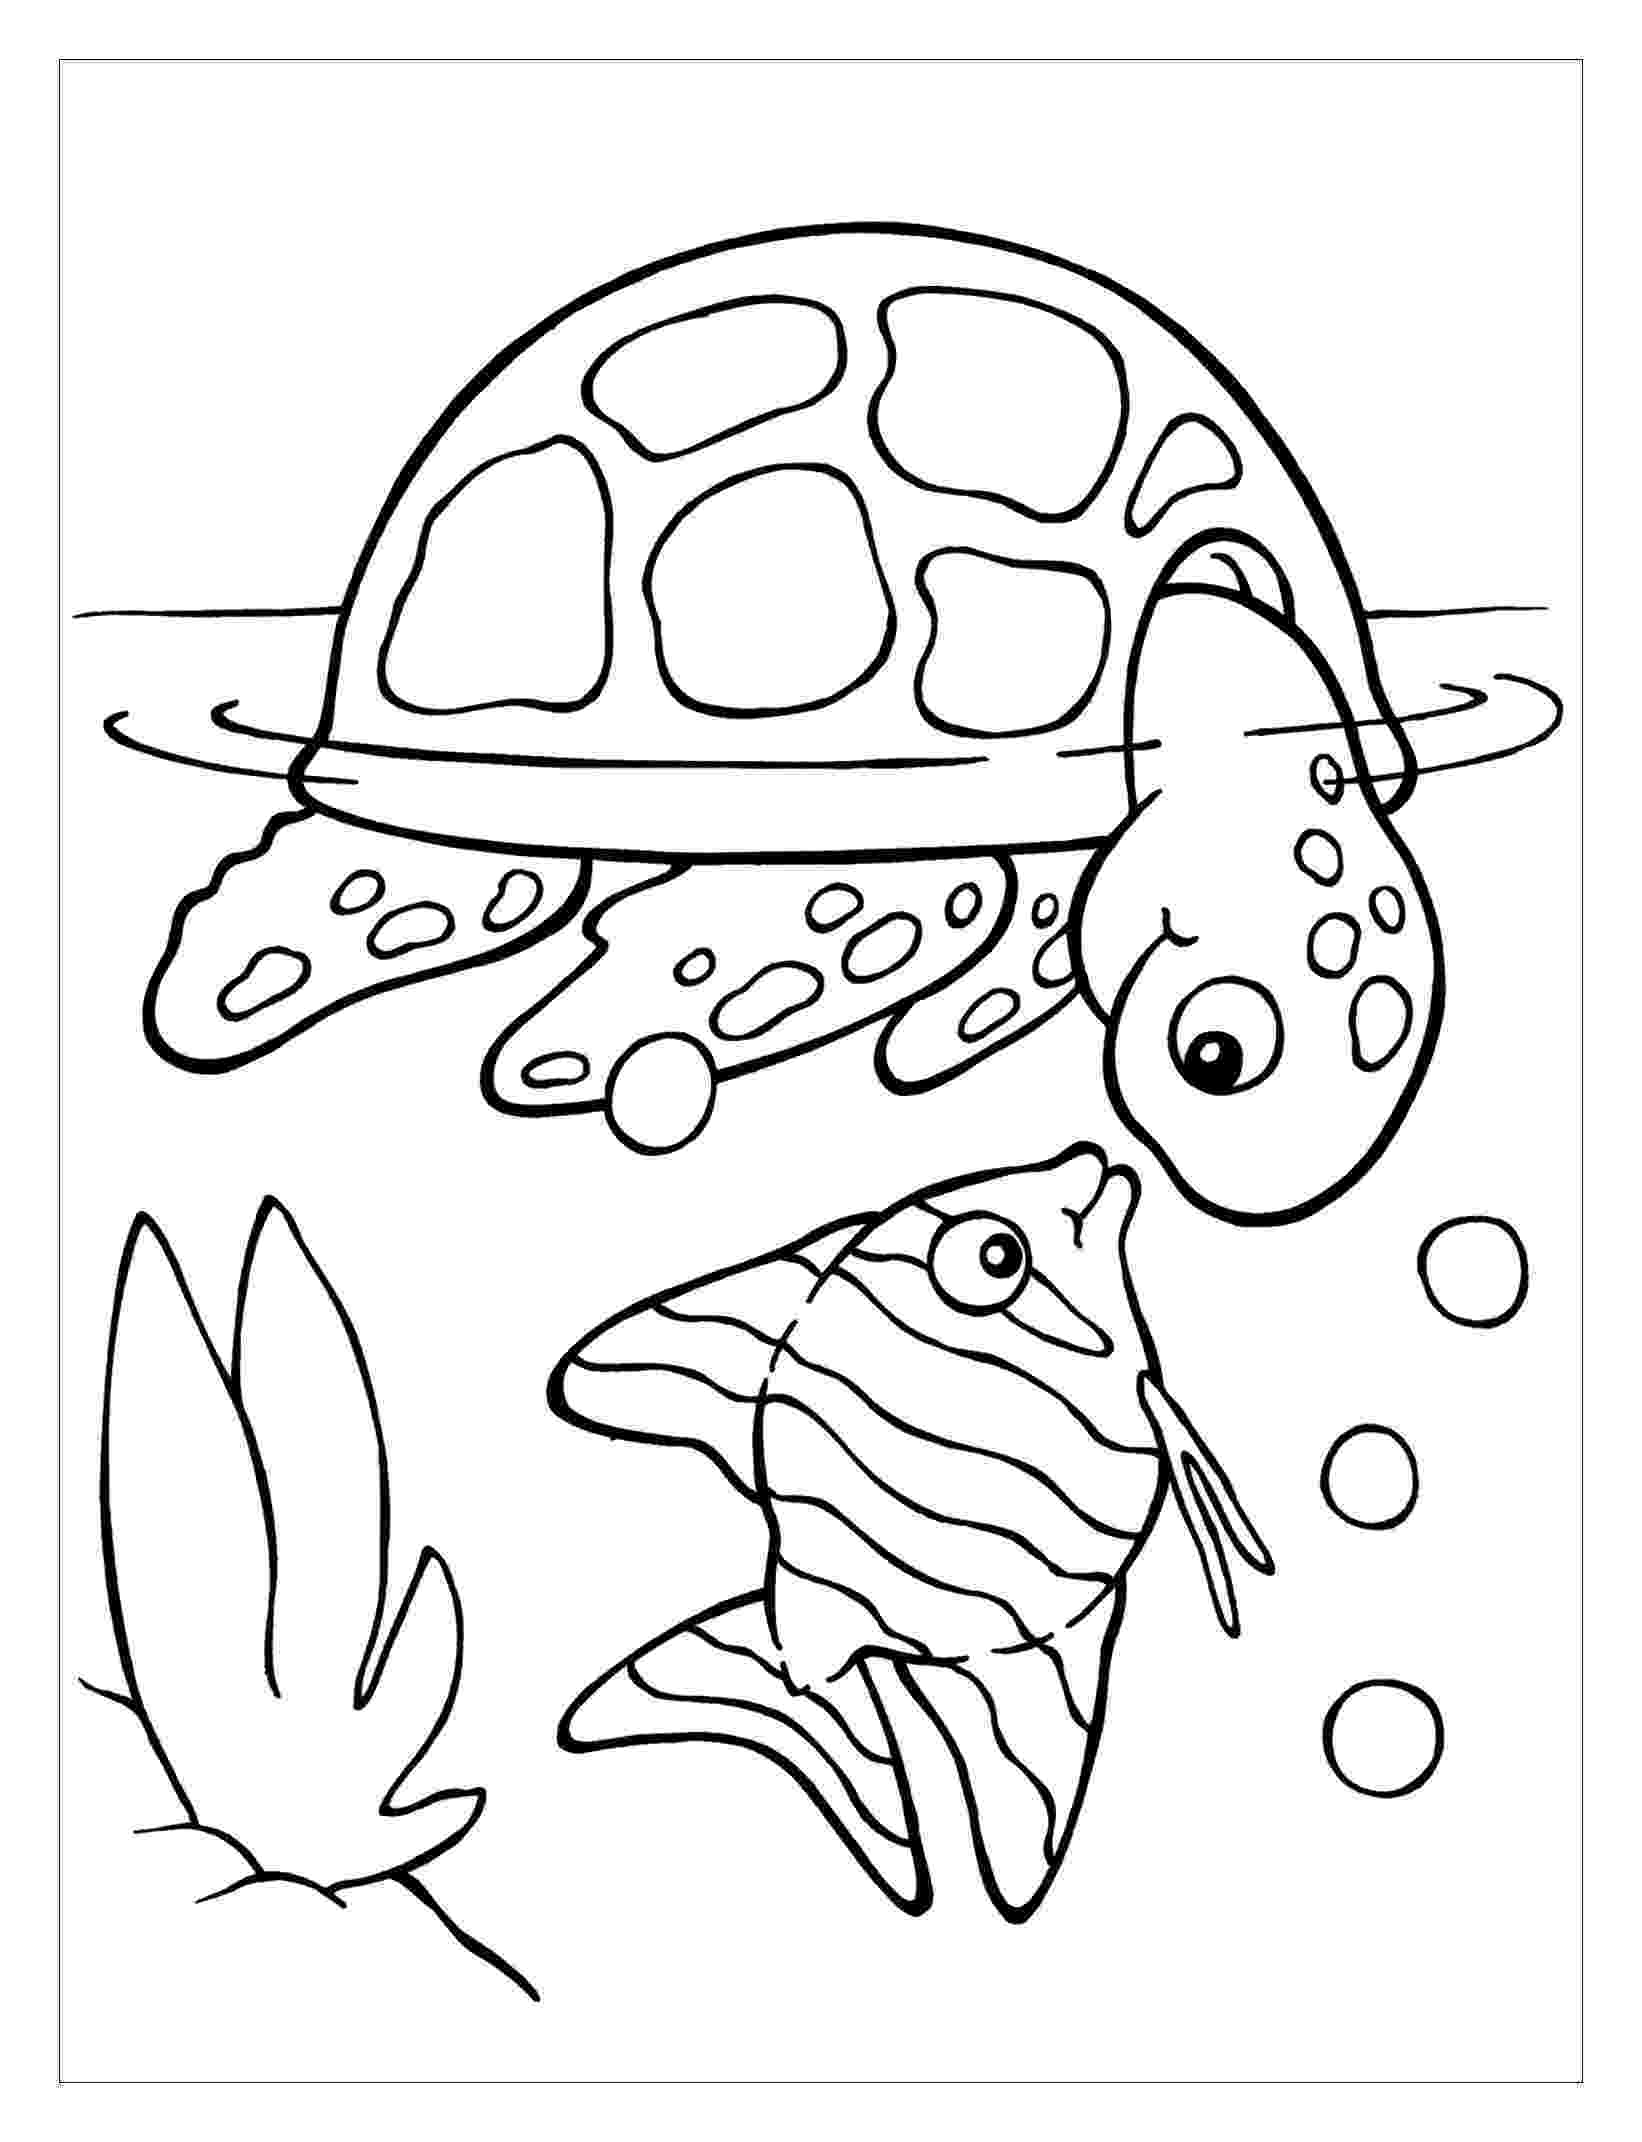 coloring pictures of turtles turtles to print turtles kids coloring pages pictures turtles coloring of